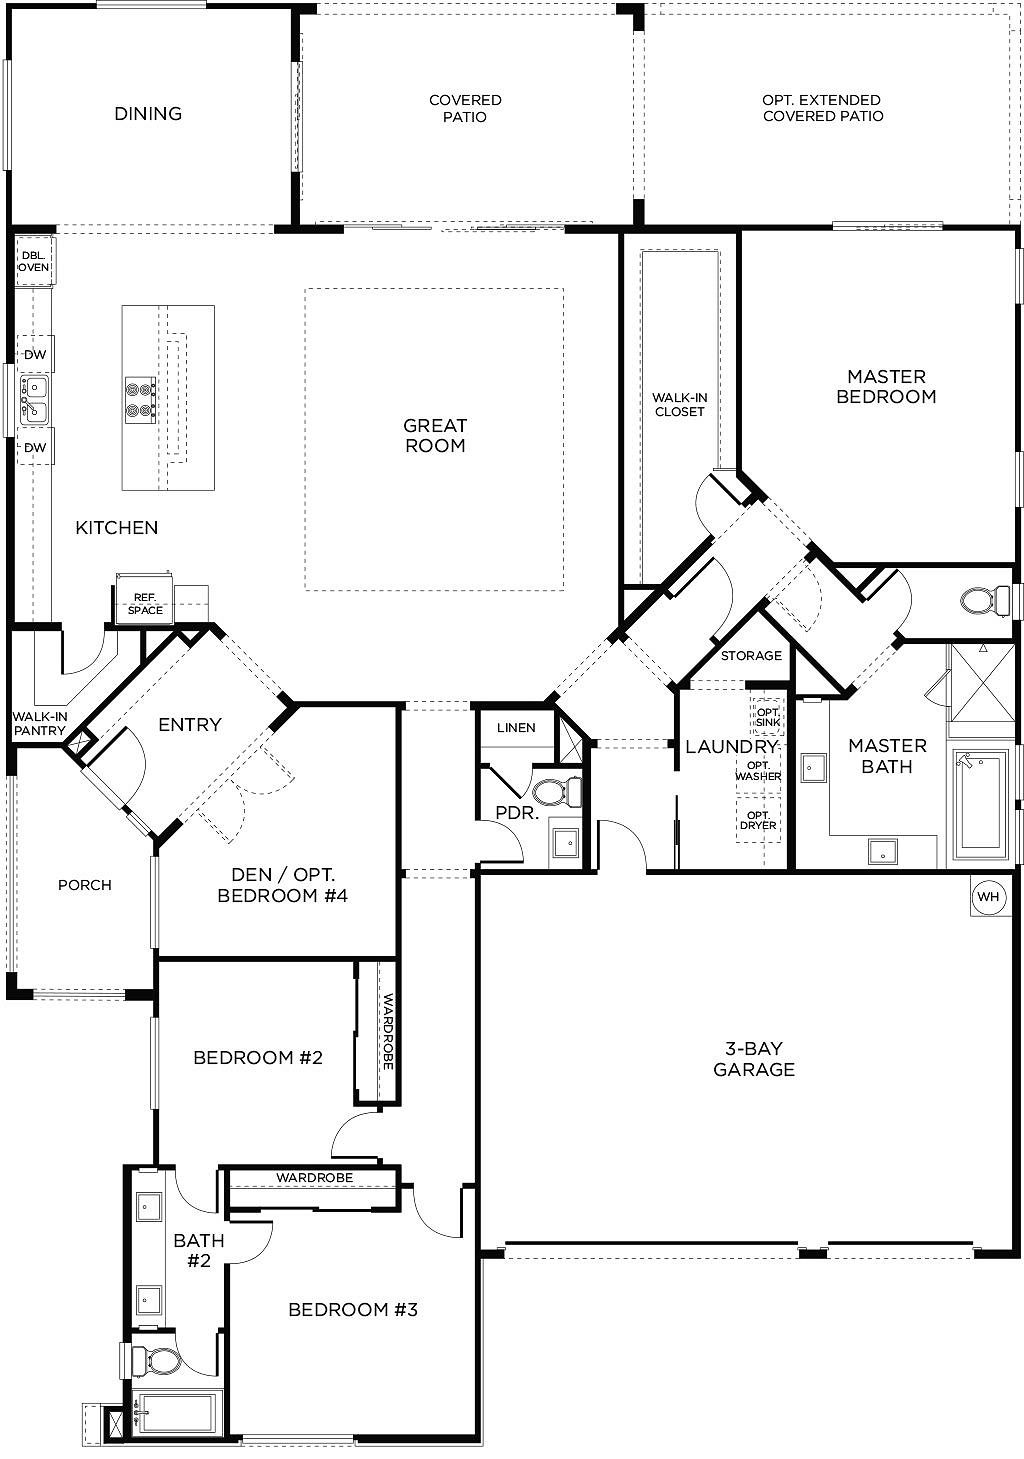 Find Your New Pardee Home Today Bathroom Floor Plans Floor Plan Design House Floor Plans